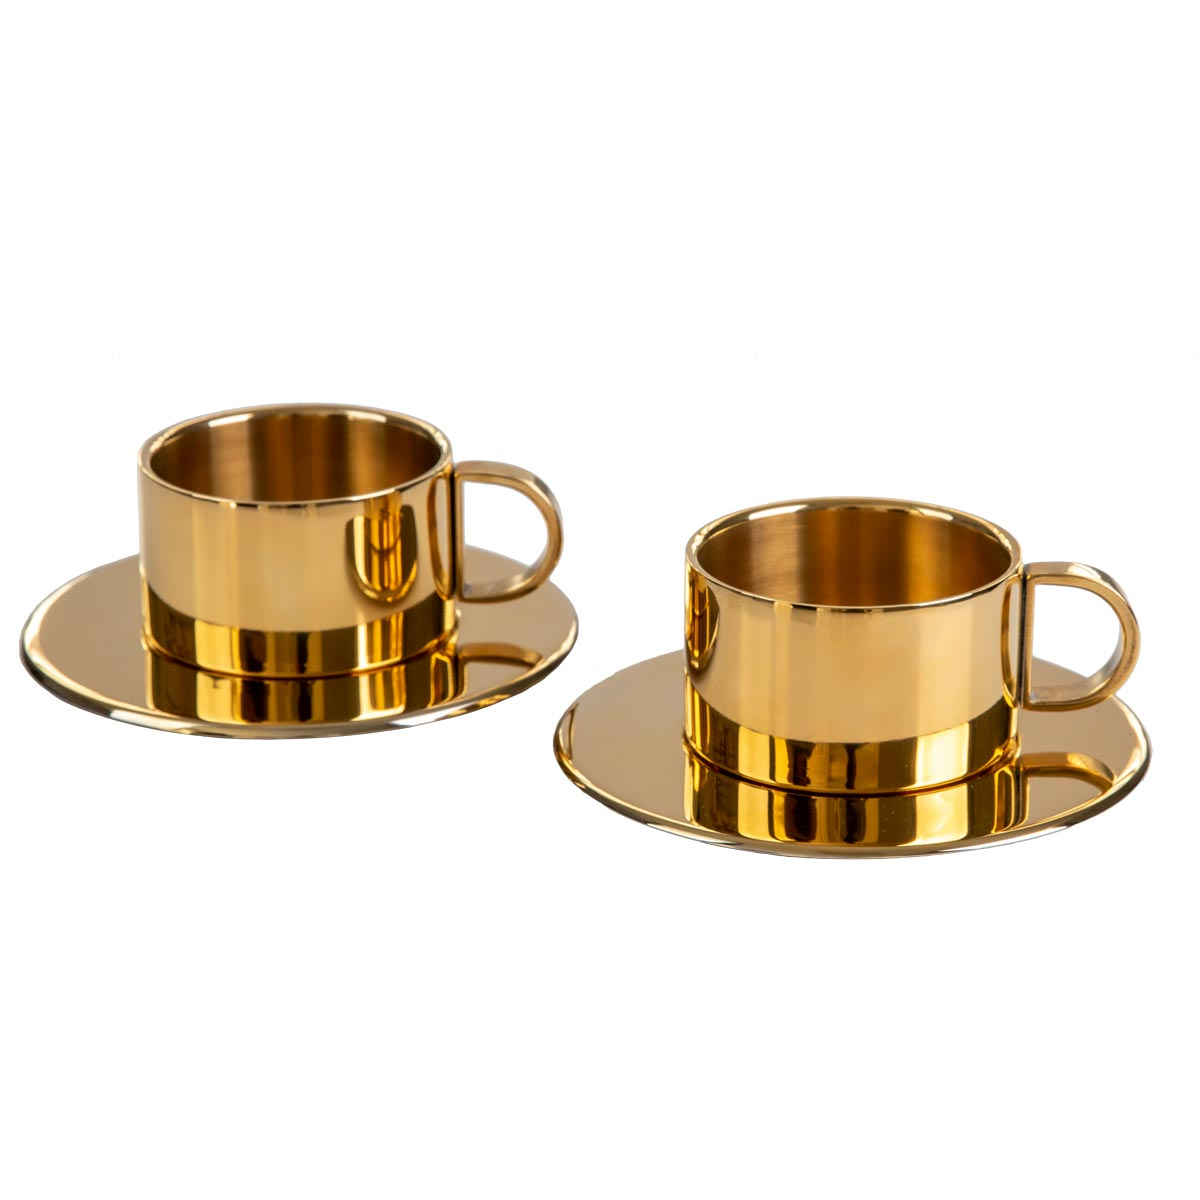 Luxury Espresso cups 24K Gold plated with saucers